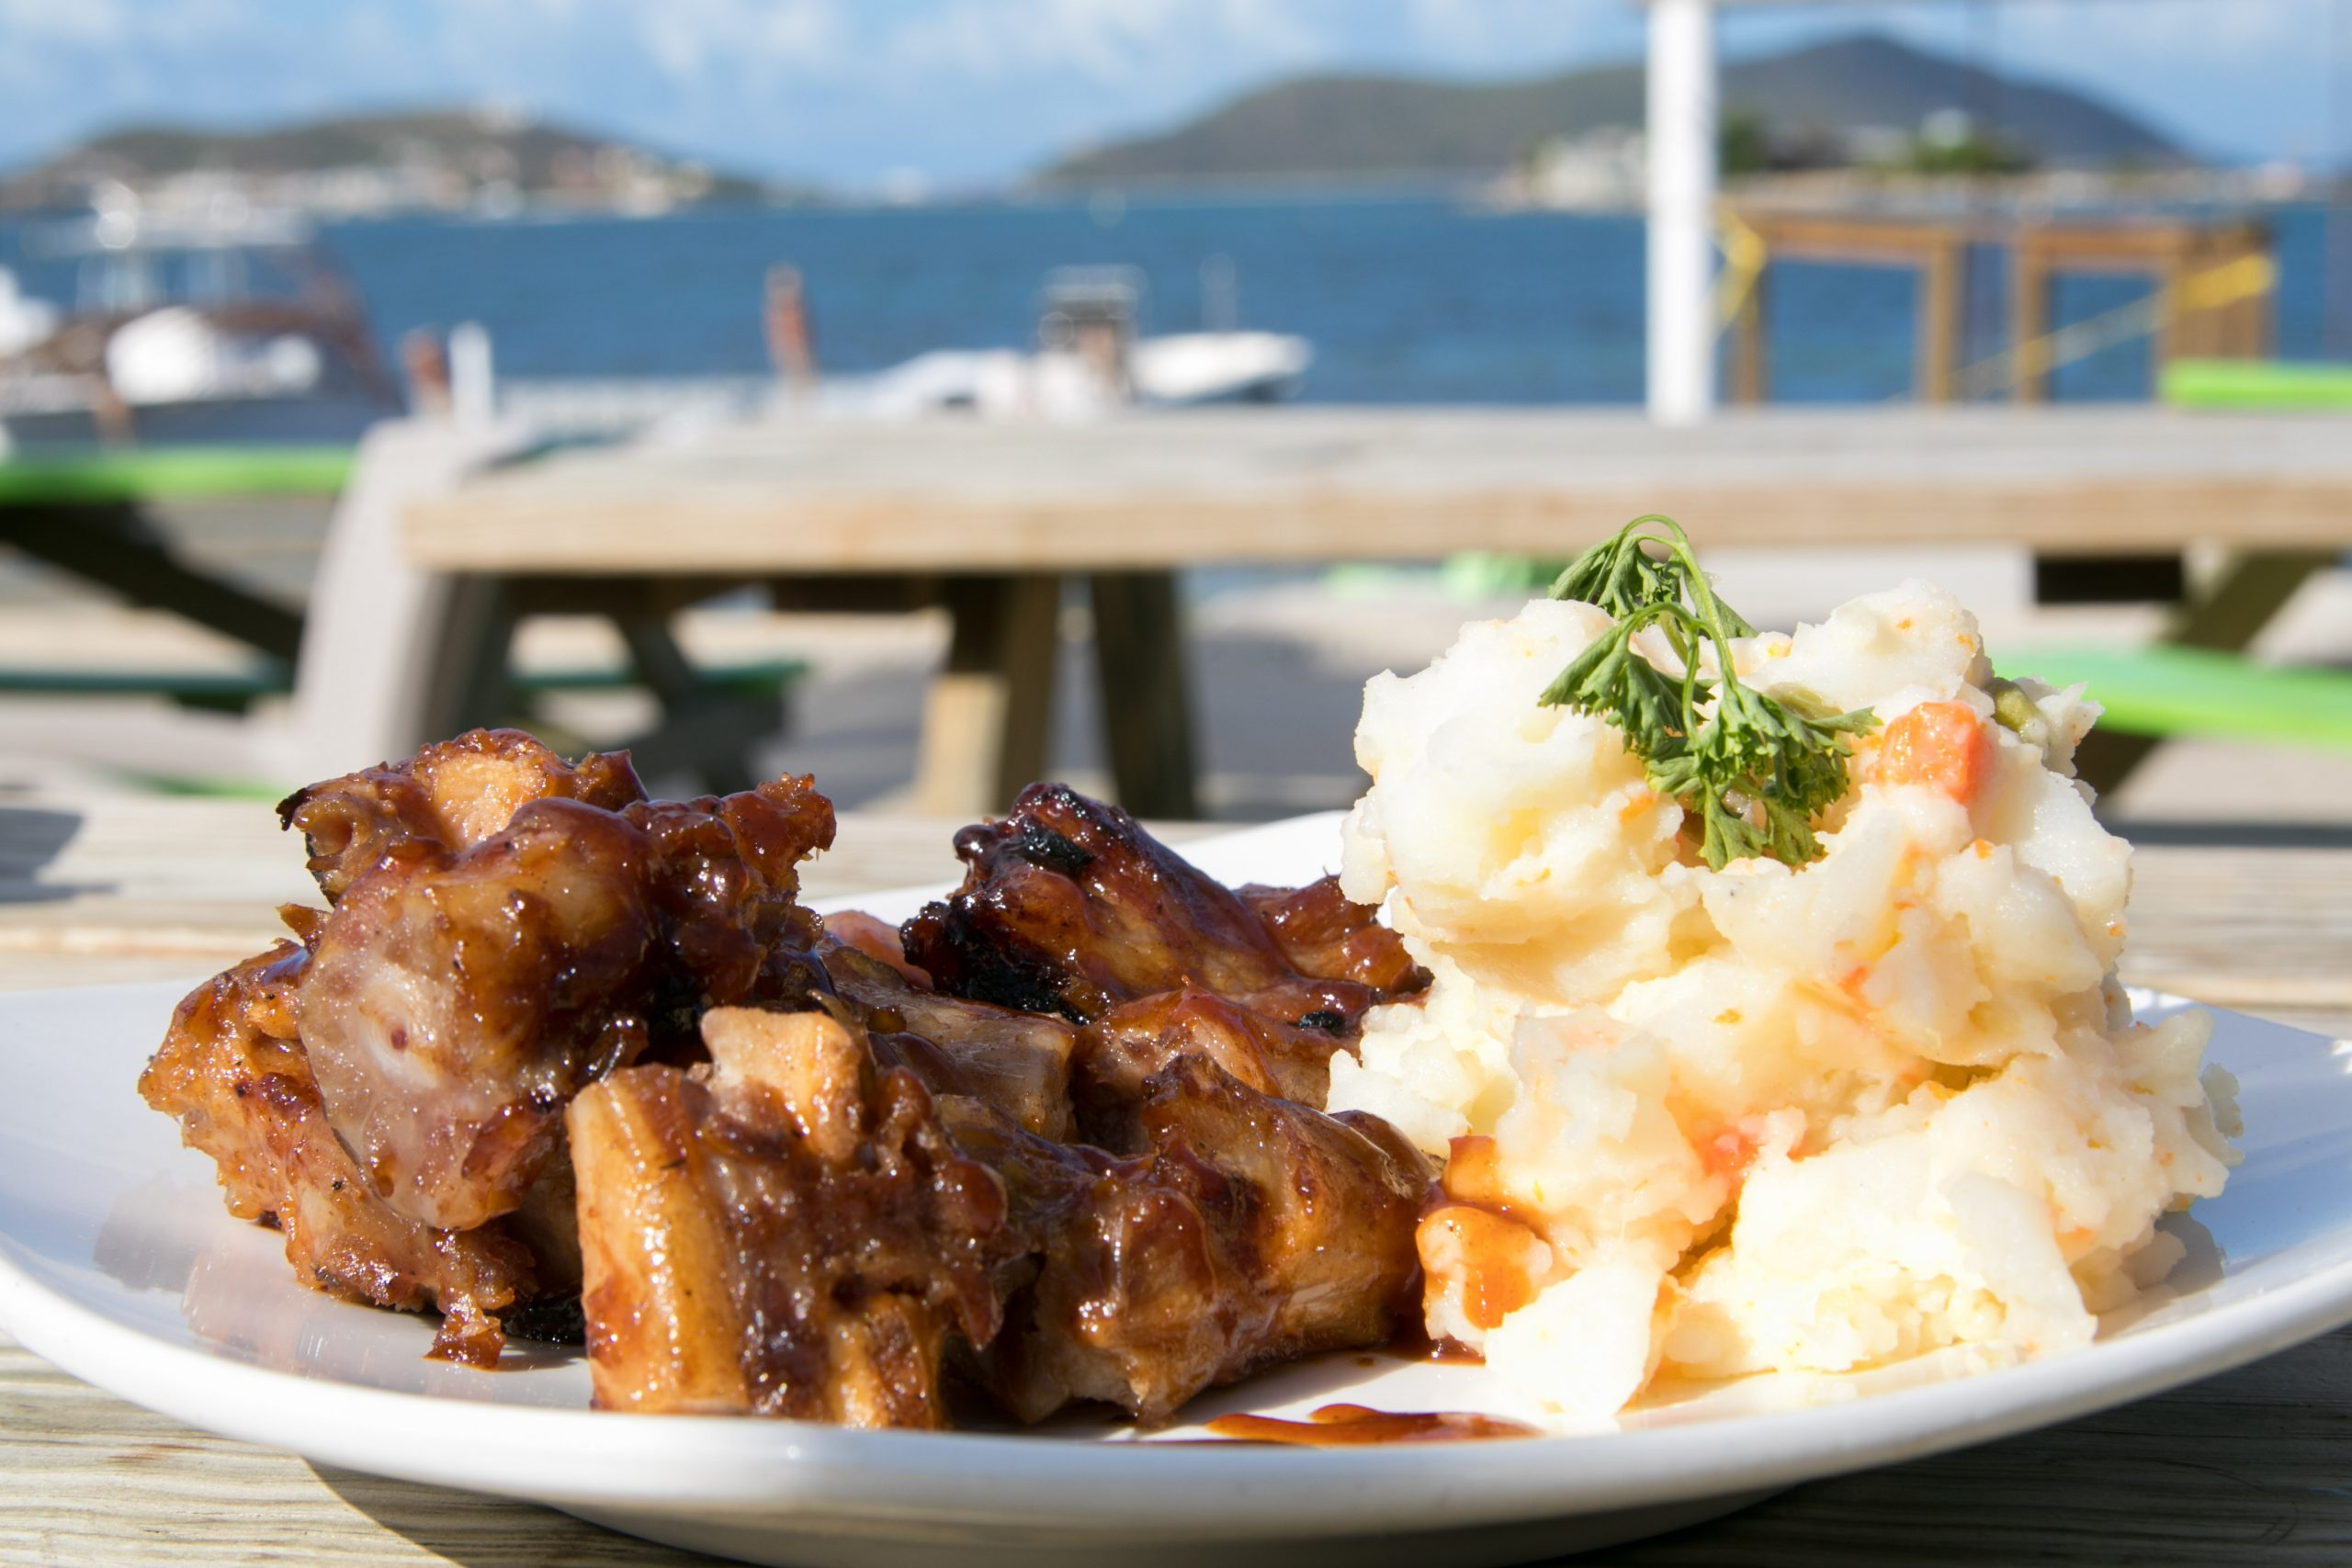 grill pigtail, potato salad at trellis bay market